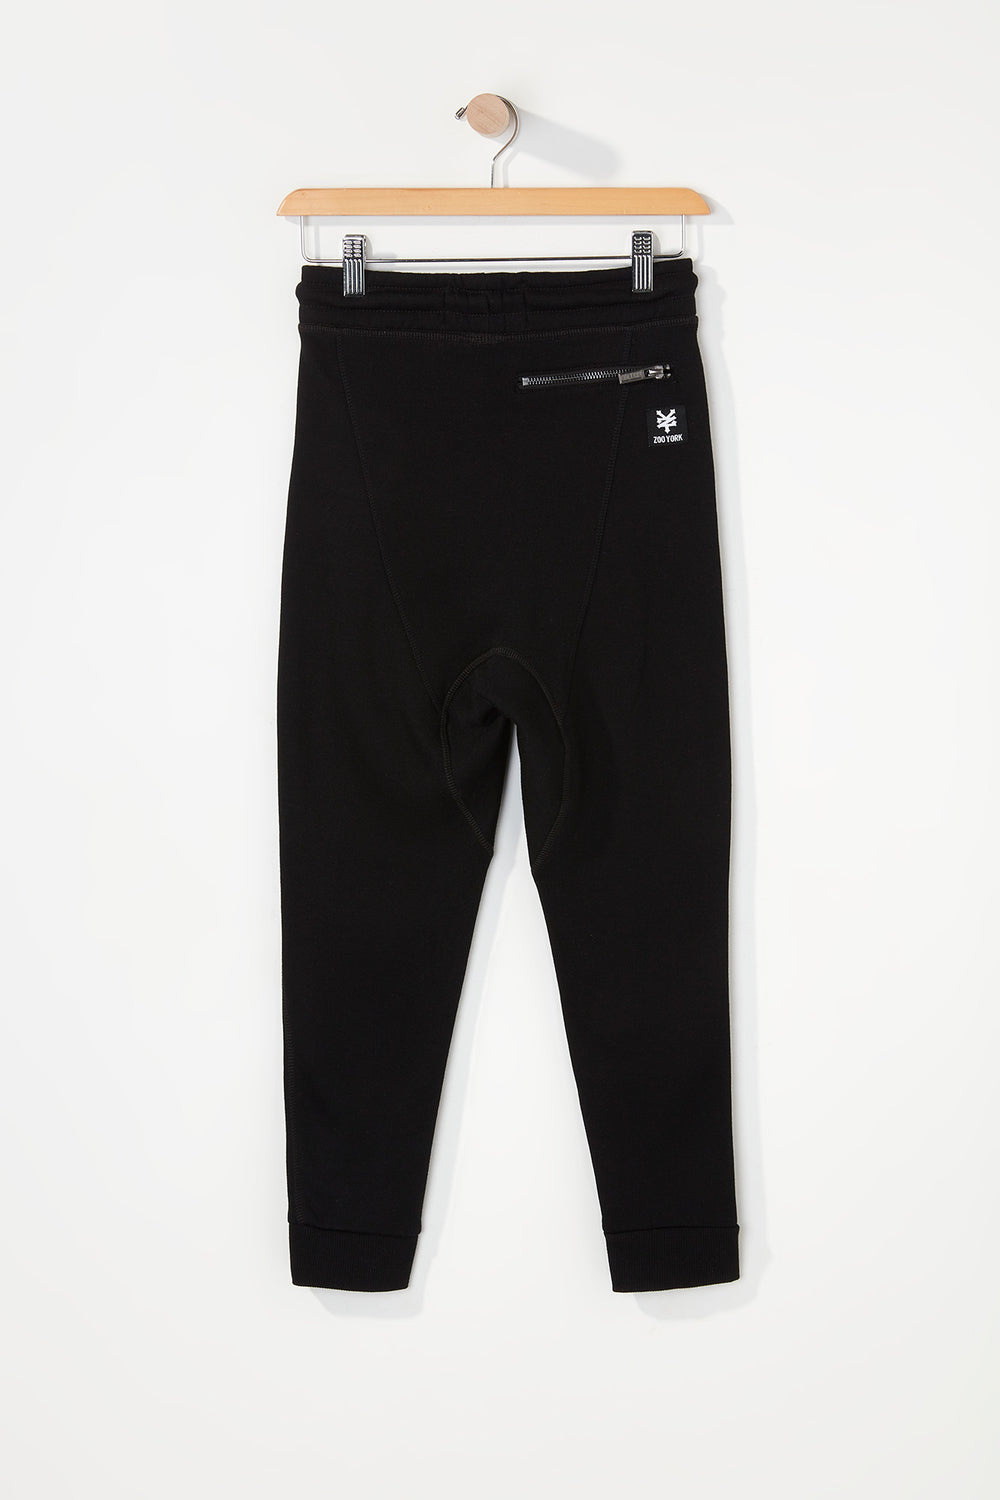 Zoo York Boys 3-Pocket Joggers Black